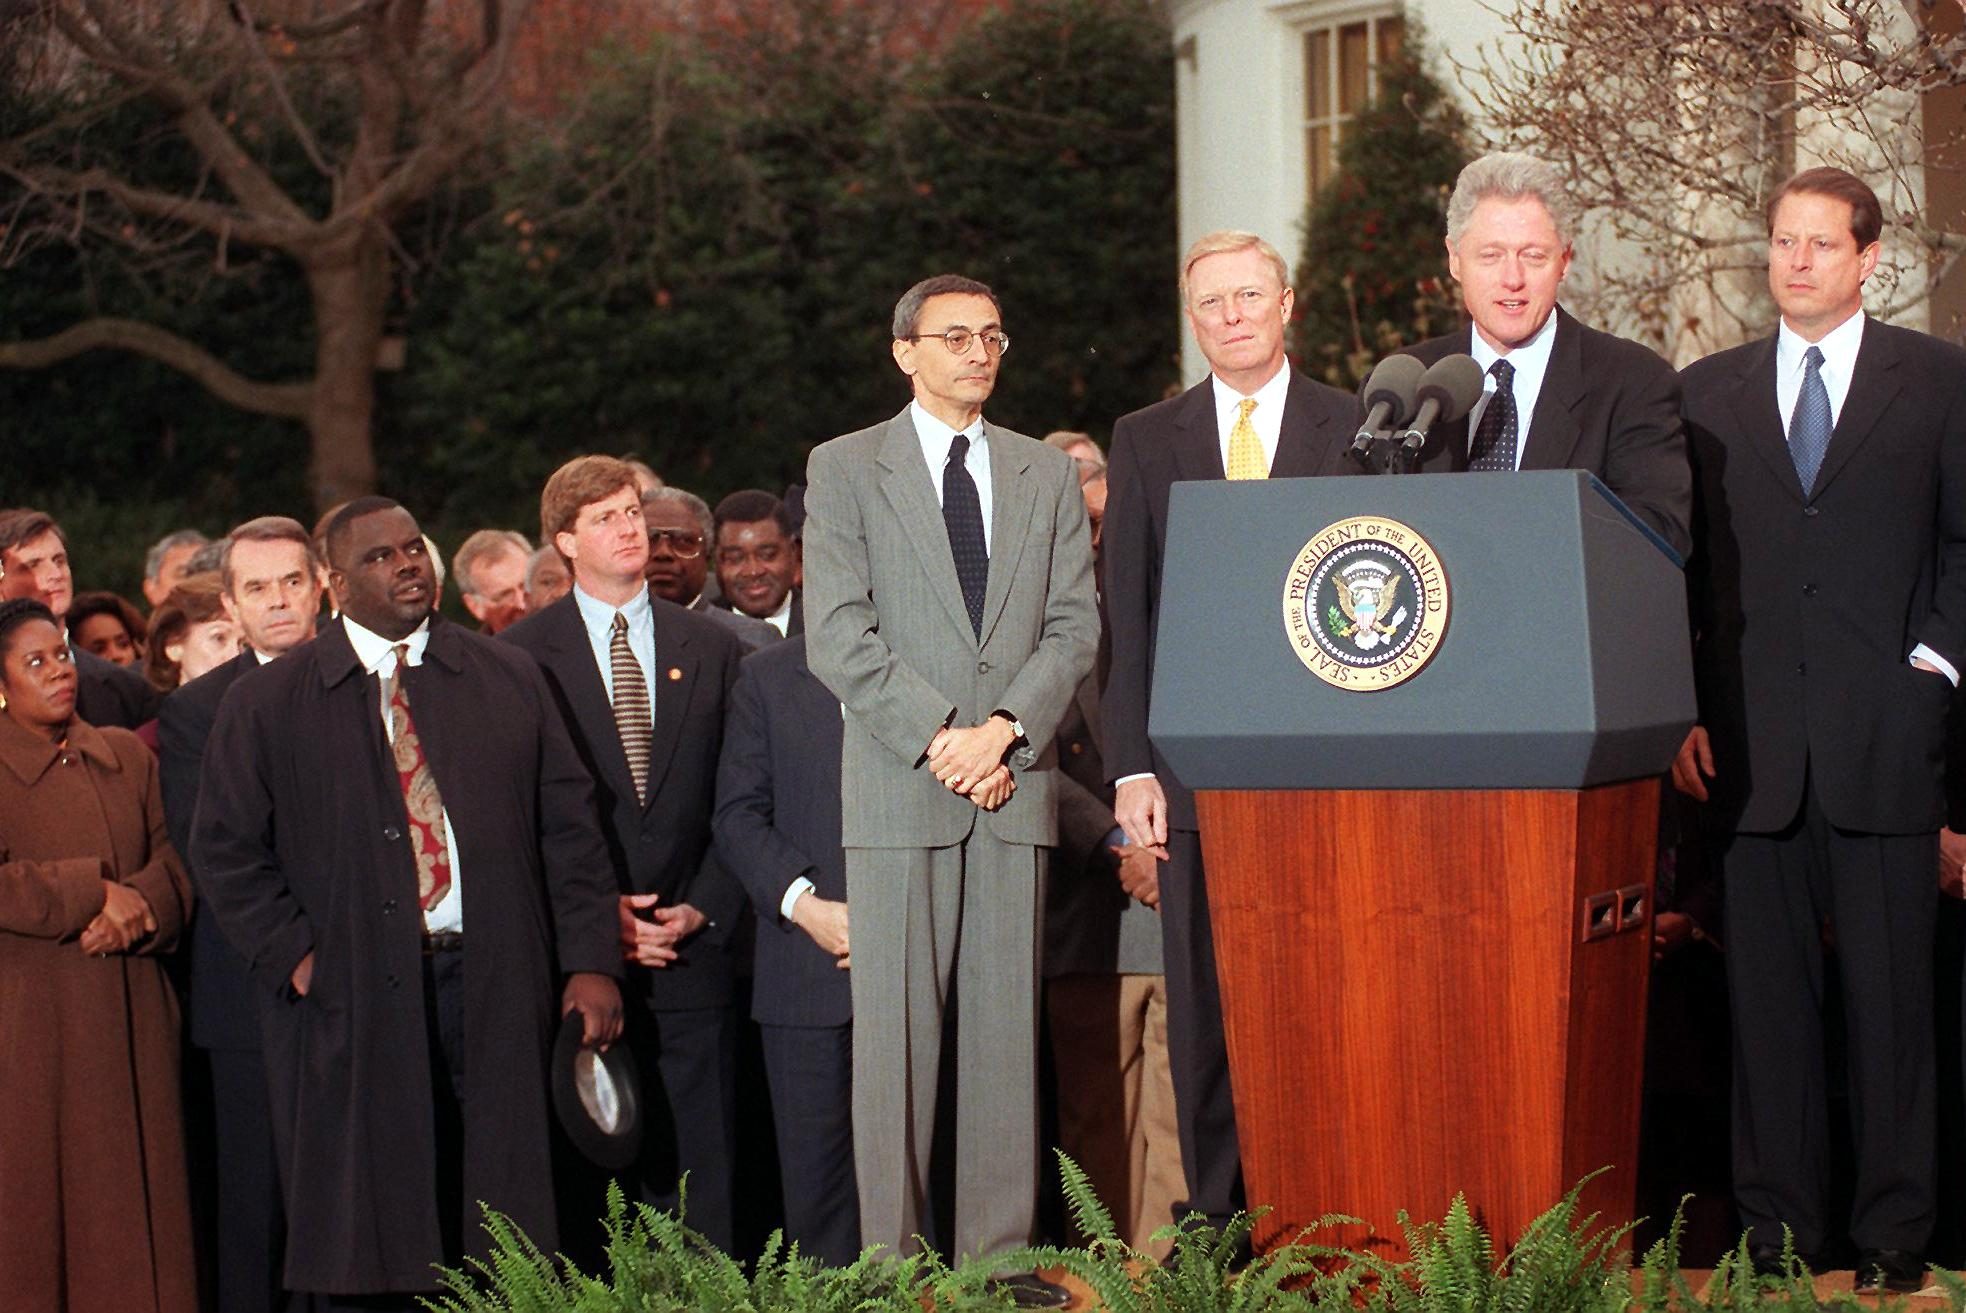 Bill Clinton addresses the nation from outside the White House on Dec. 19 1998 after the US House of Representatives impeached him.